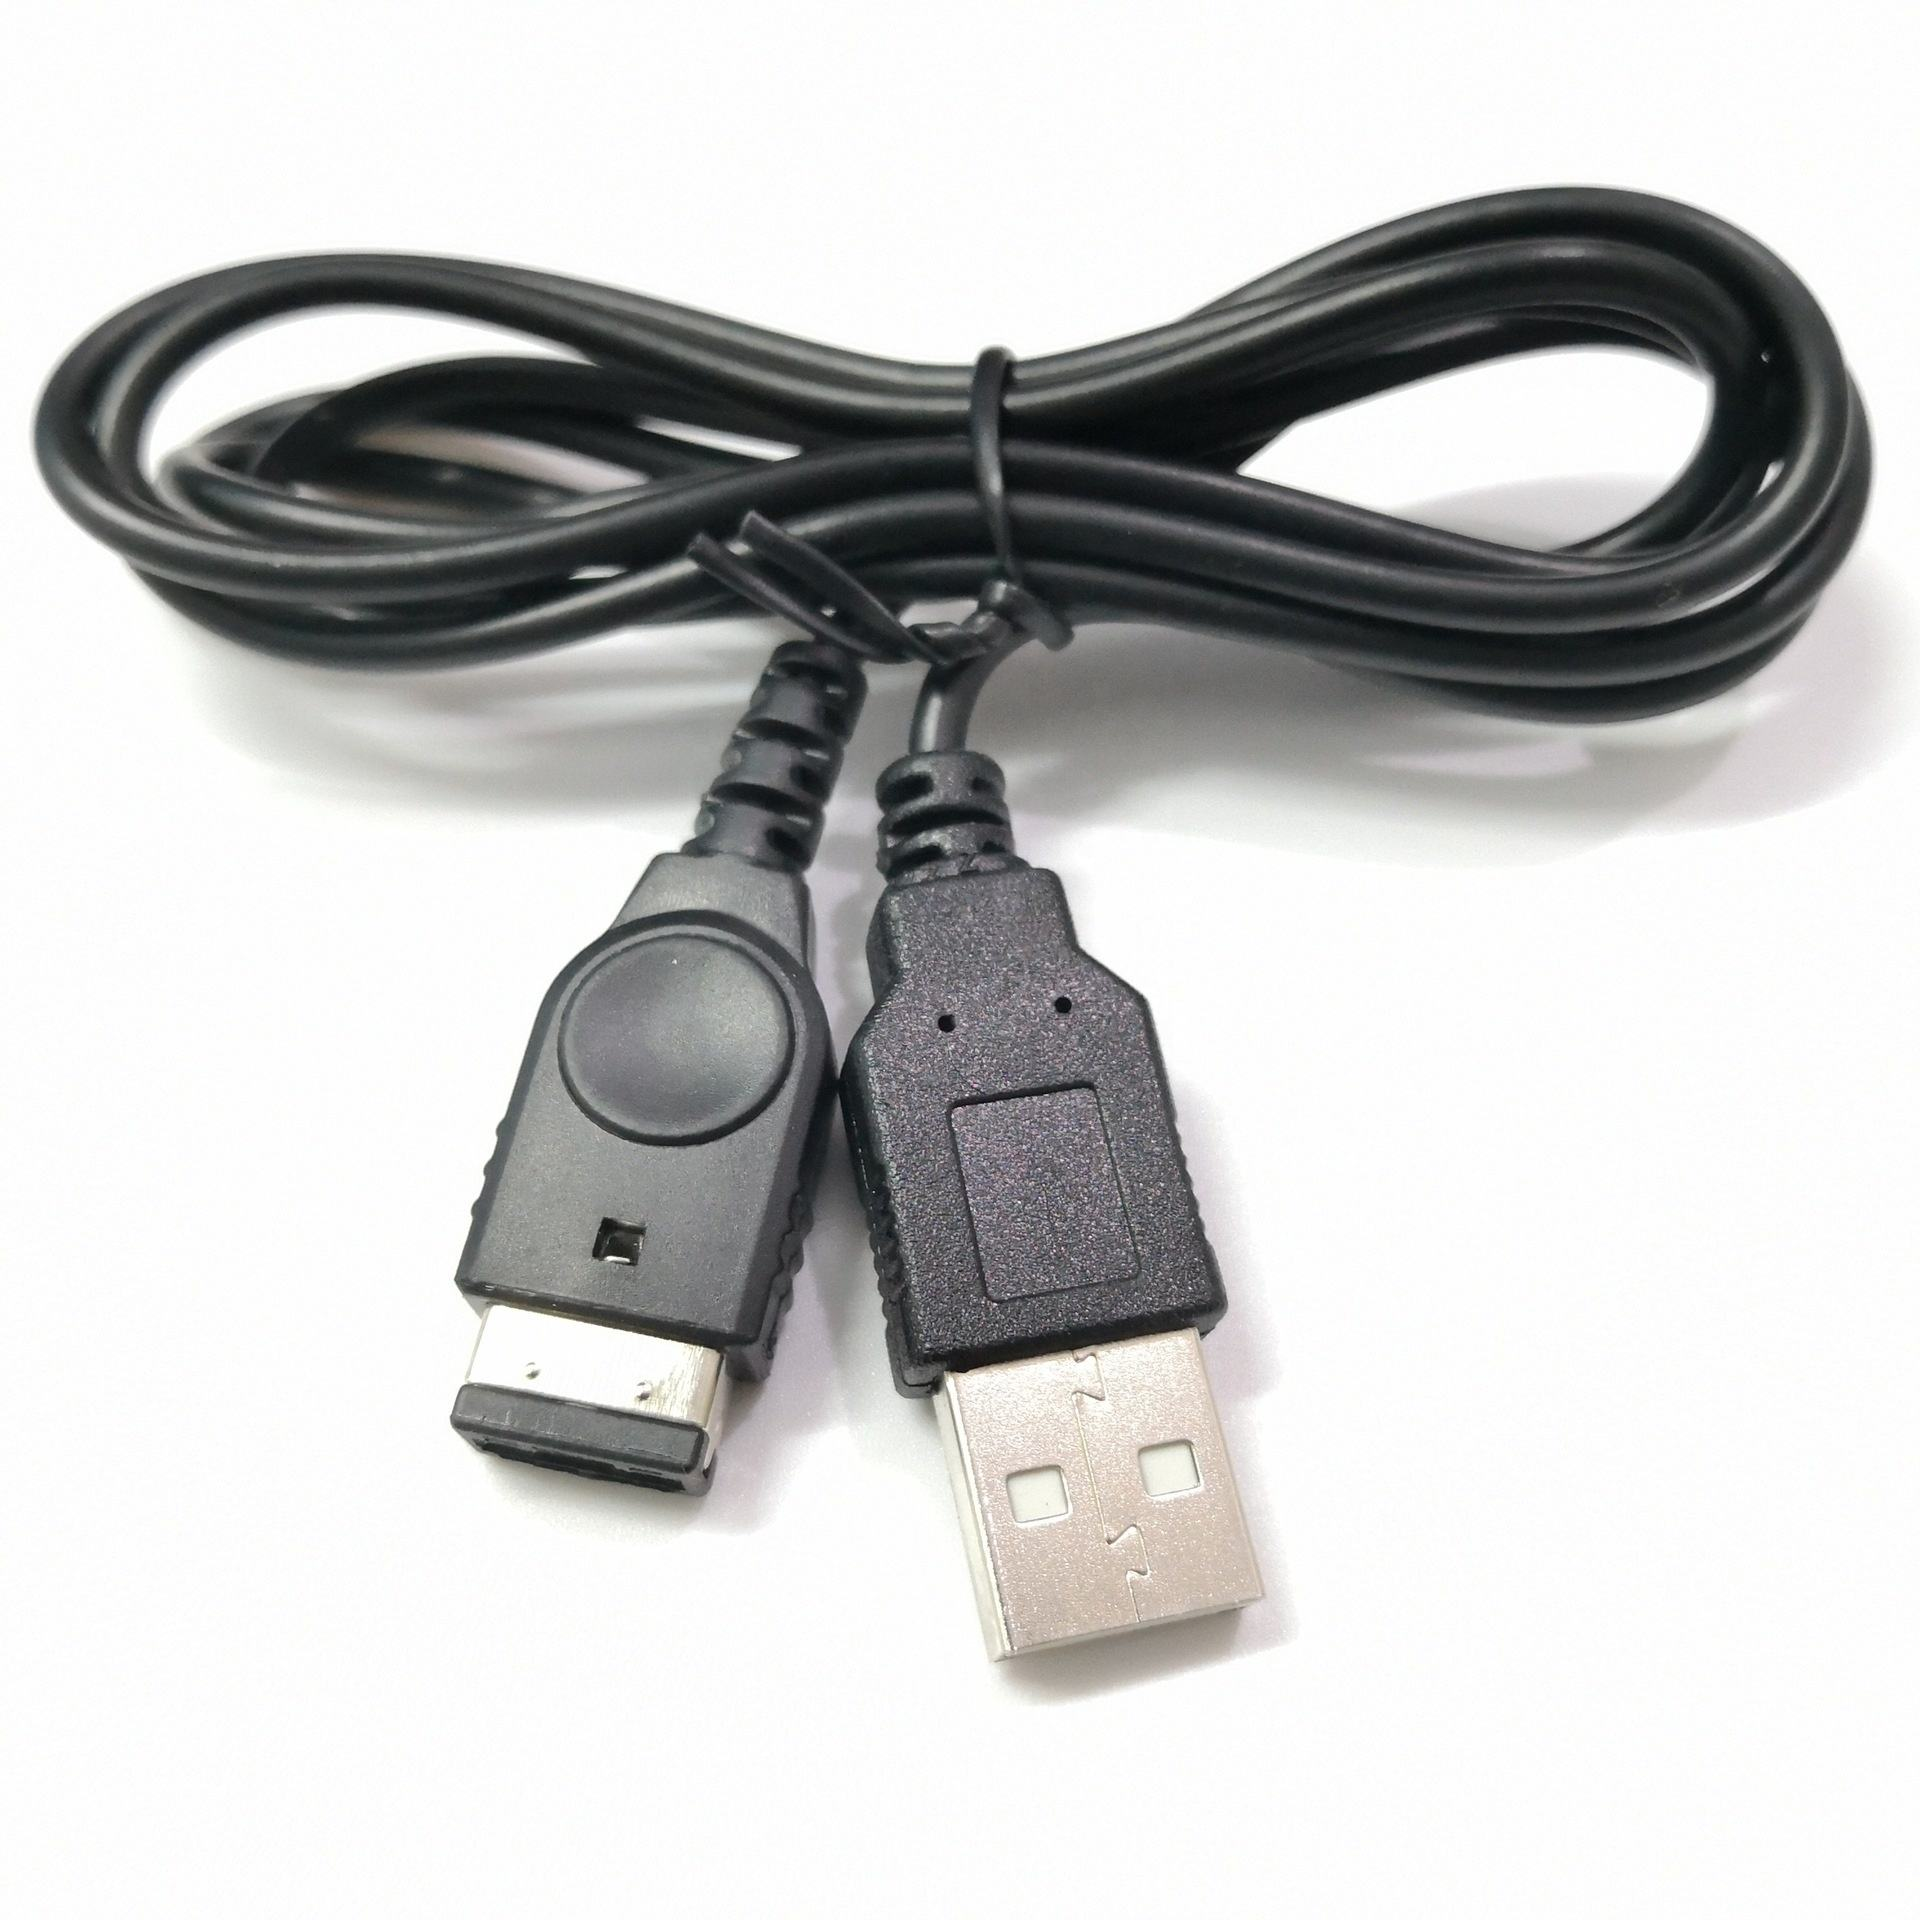 1.2M USB ChargerสายไฟสำหรับNintendo DS GBA SP Gameboy Advance SP